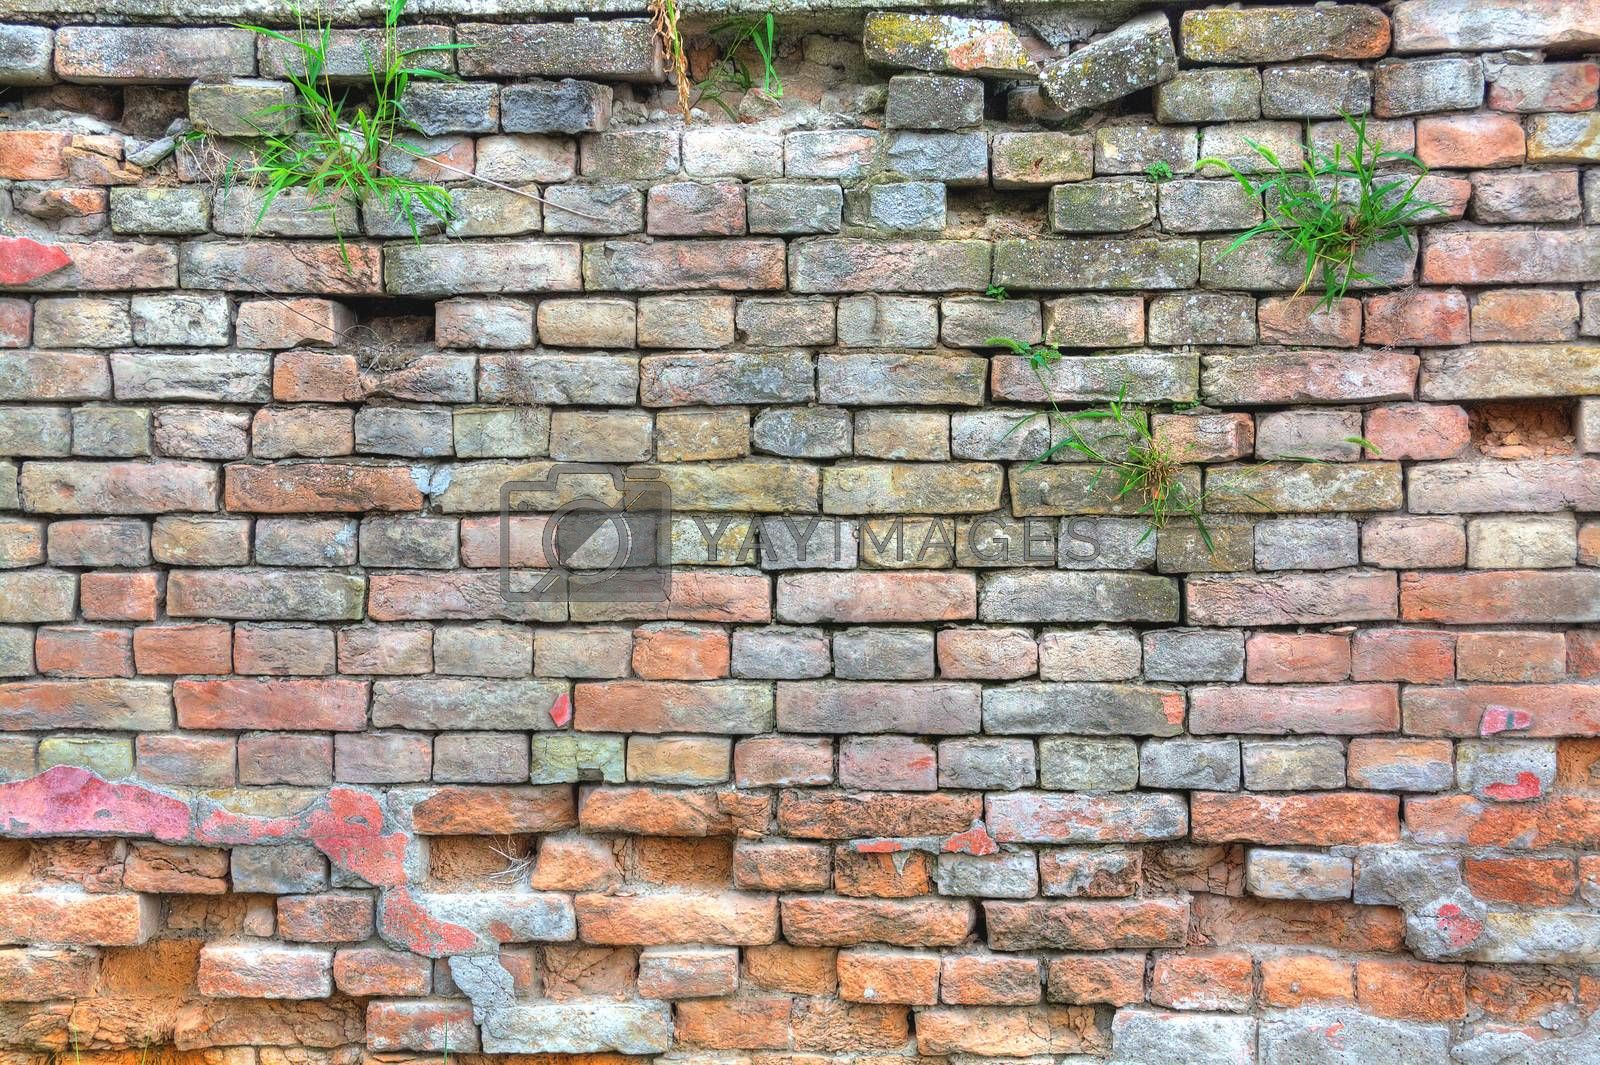 Hdr image of an old wall